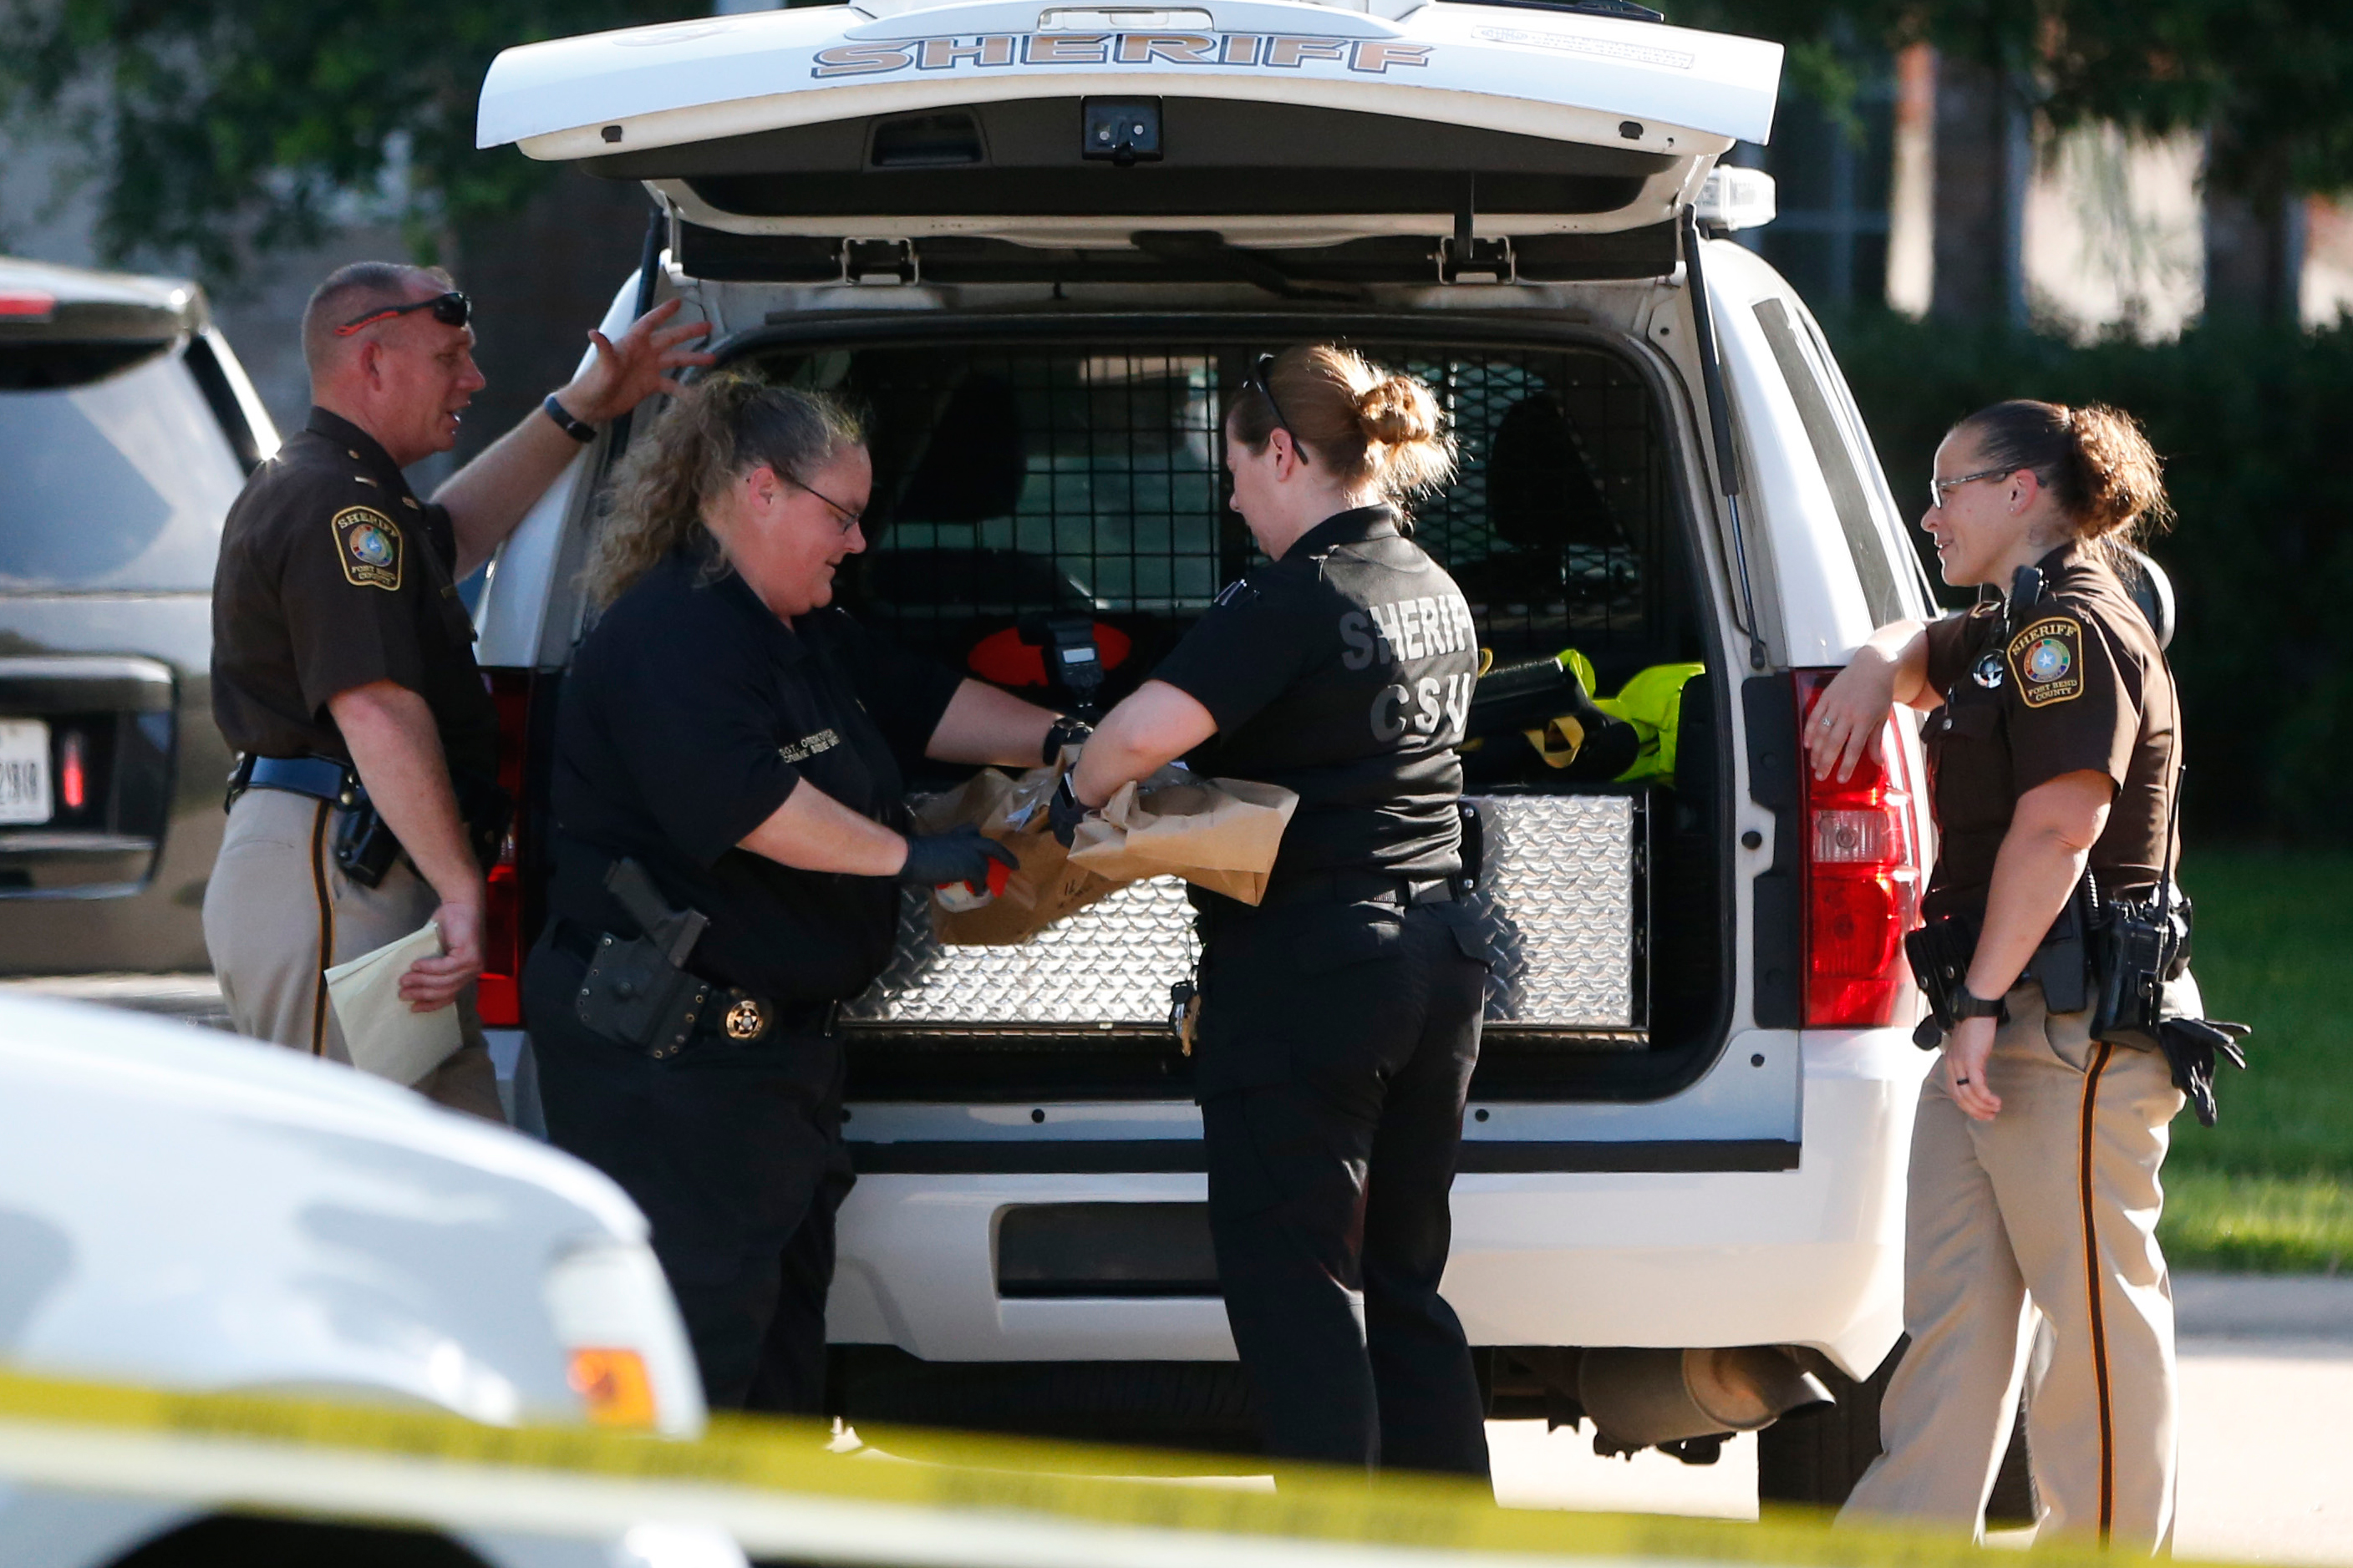 Fort Bend County Sheriffs department crime scene members bag a gun for evidence in a shooting at Blanchard Grove and Remson Hollow in Katy, Texas on June 24, 2016.